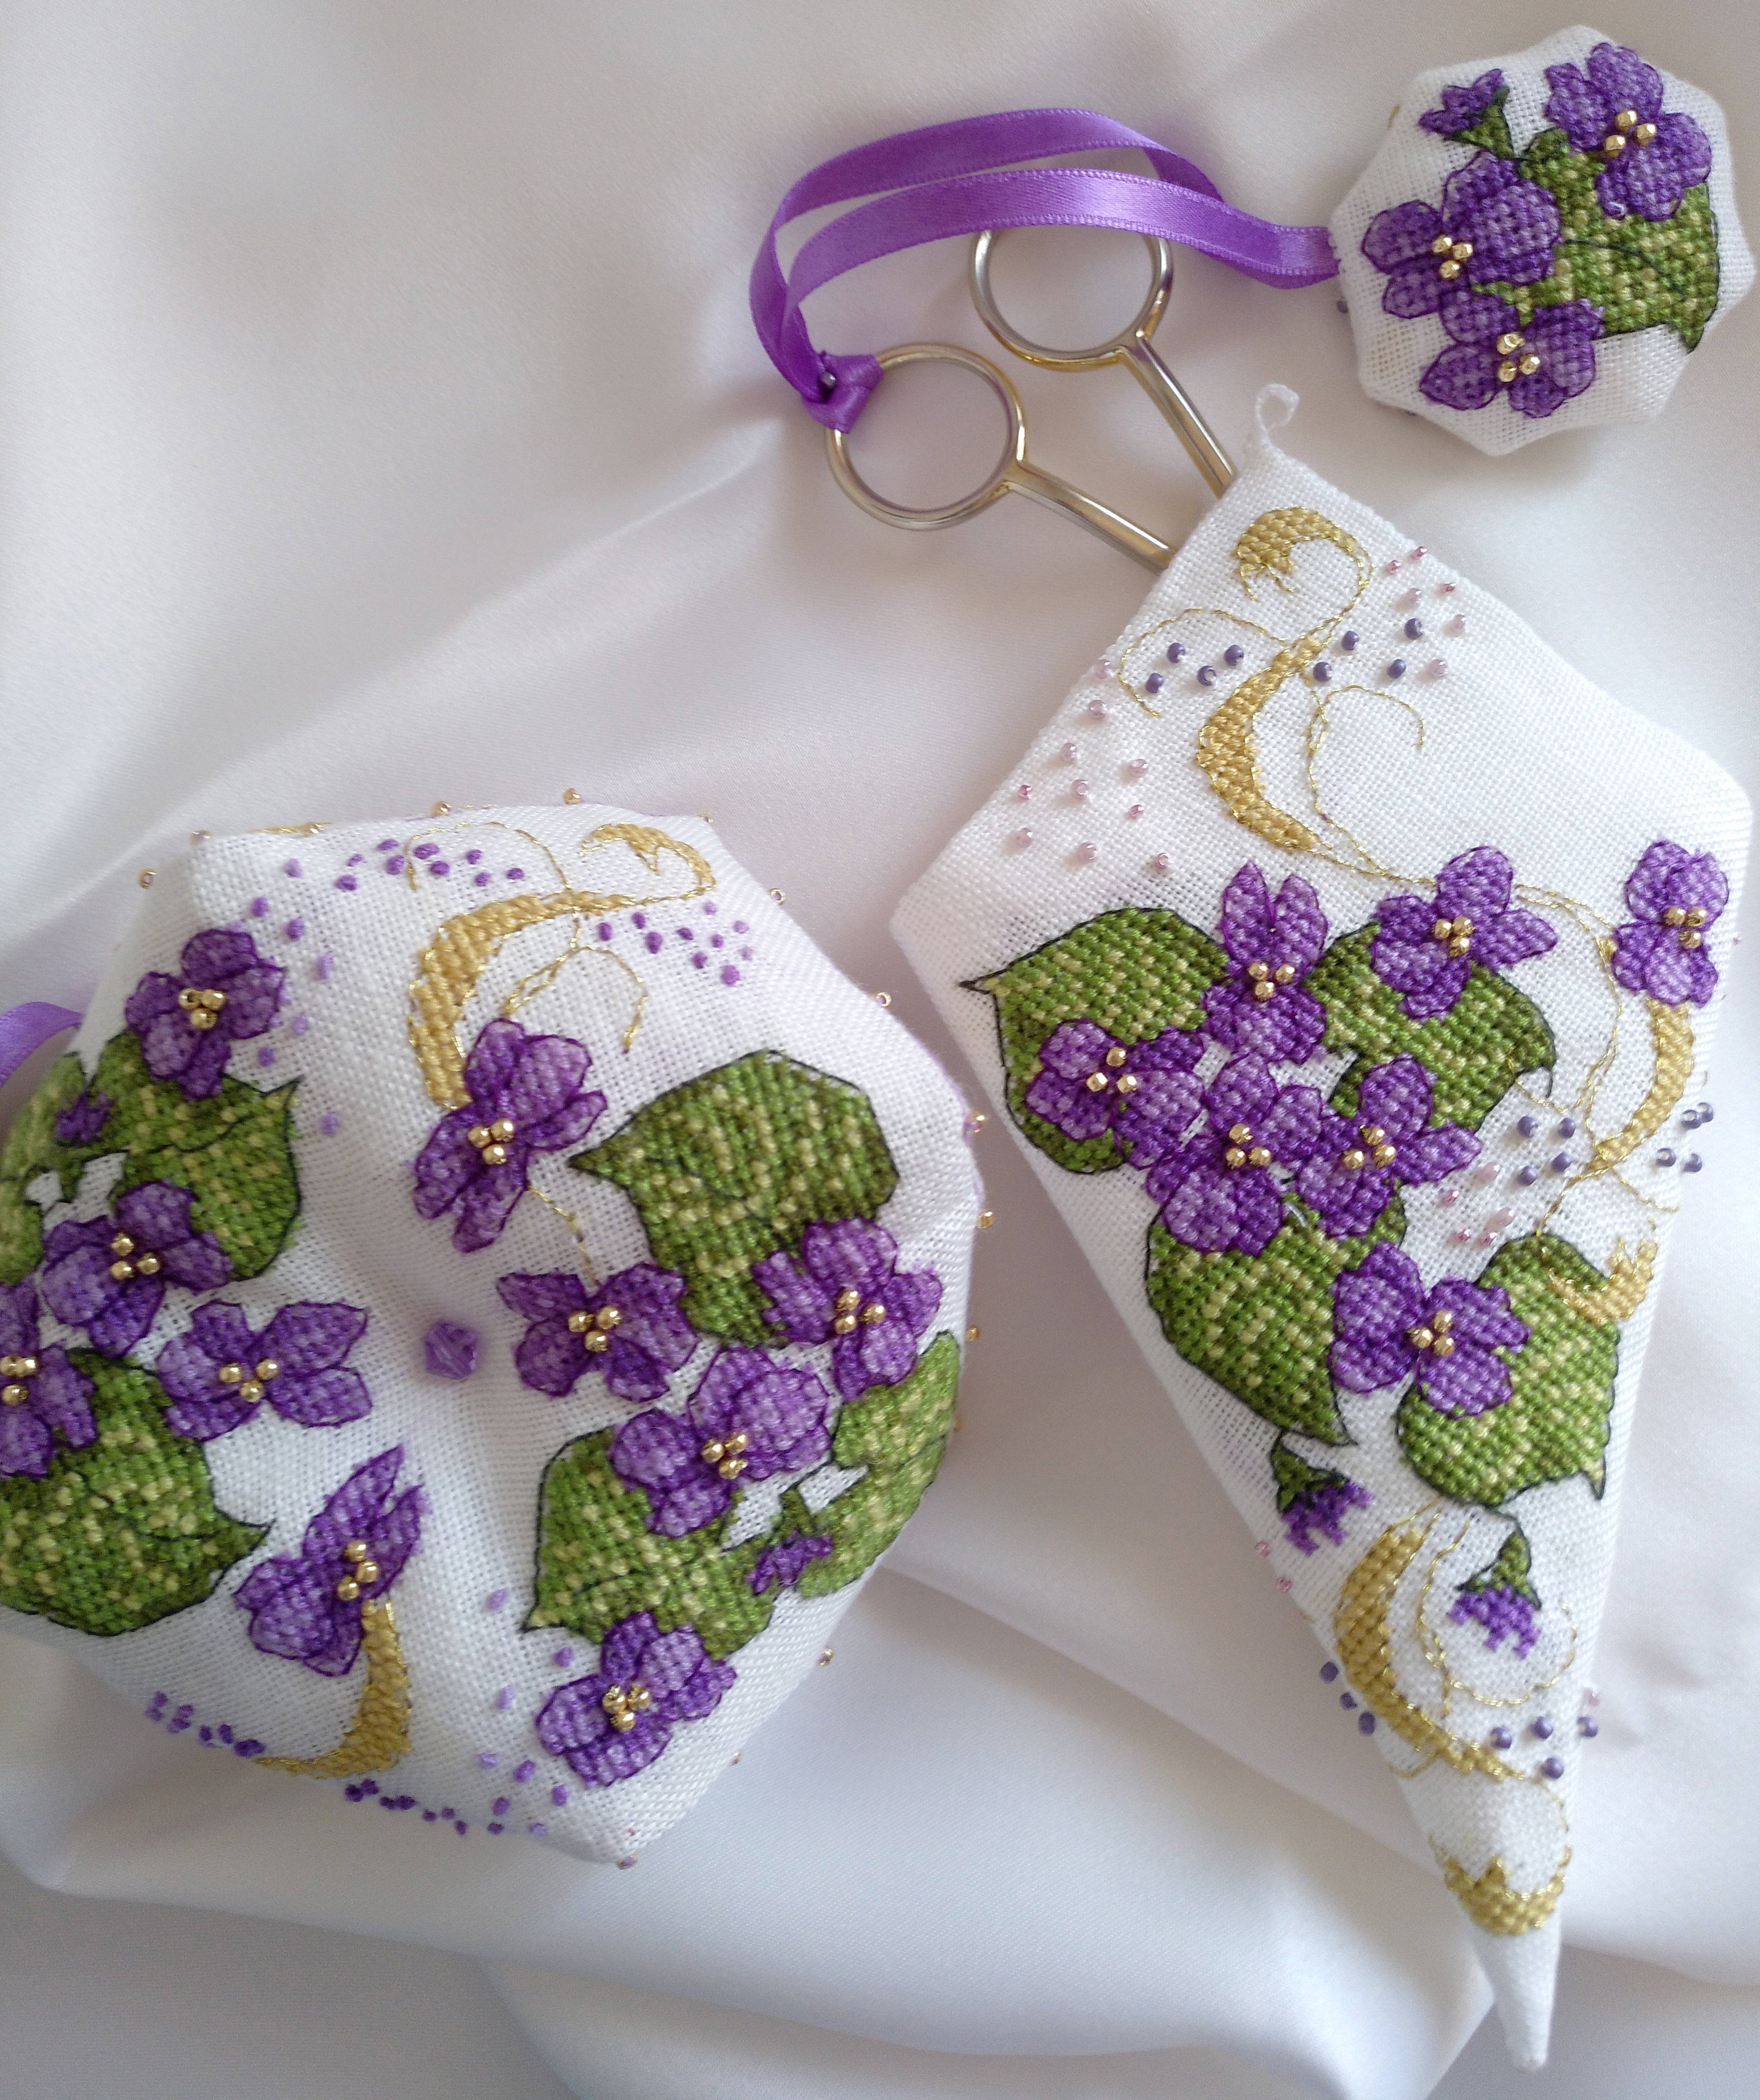 Violet Set (Faby Reilly Designs) stitched by Marina P